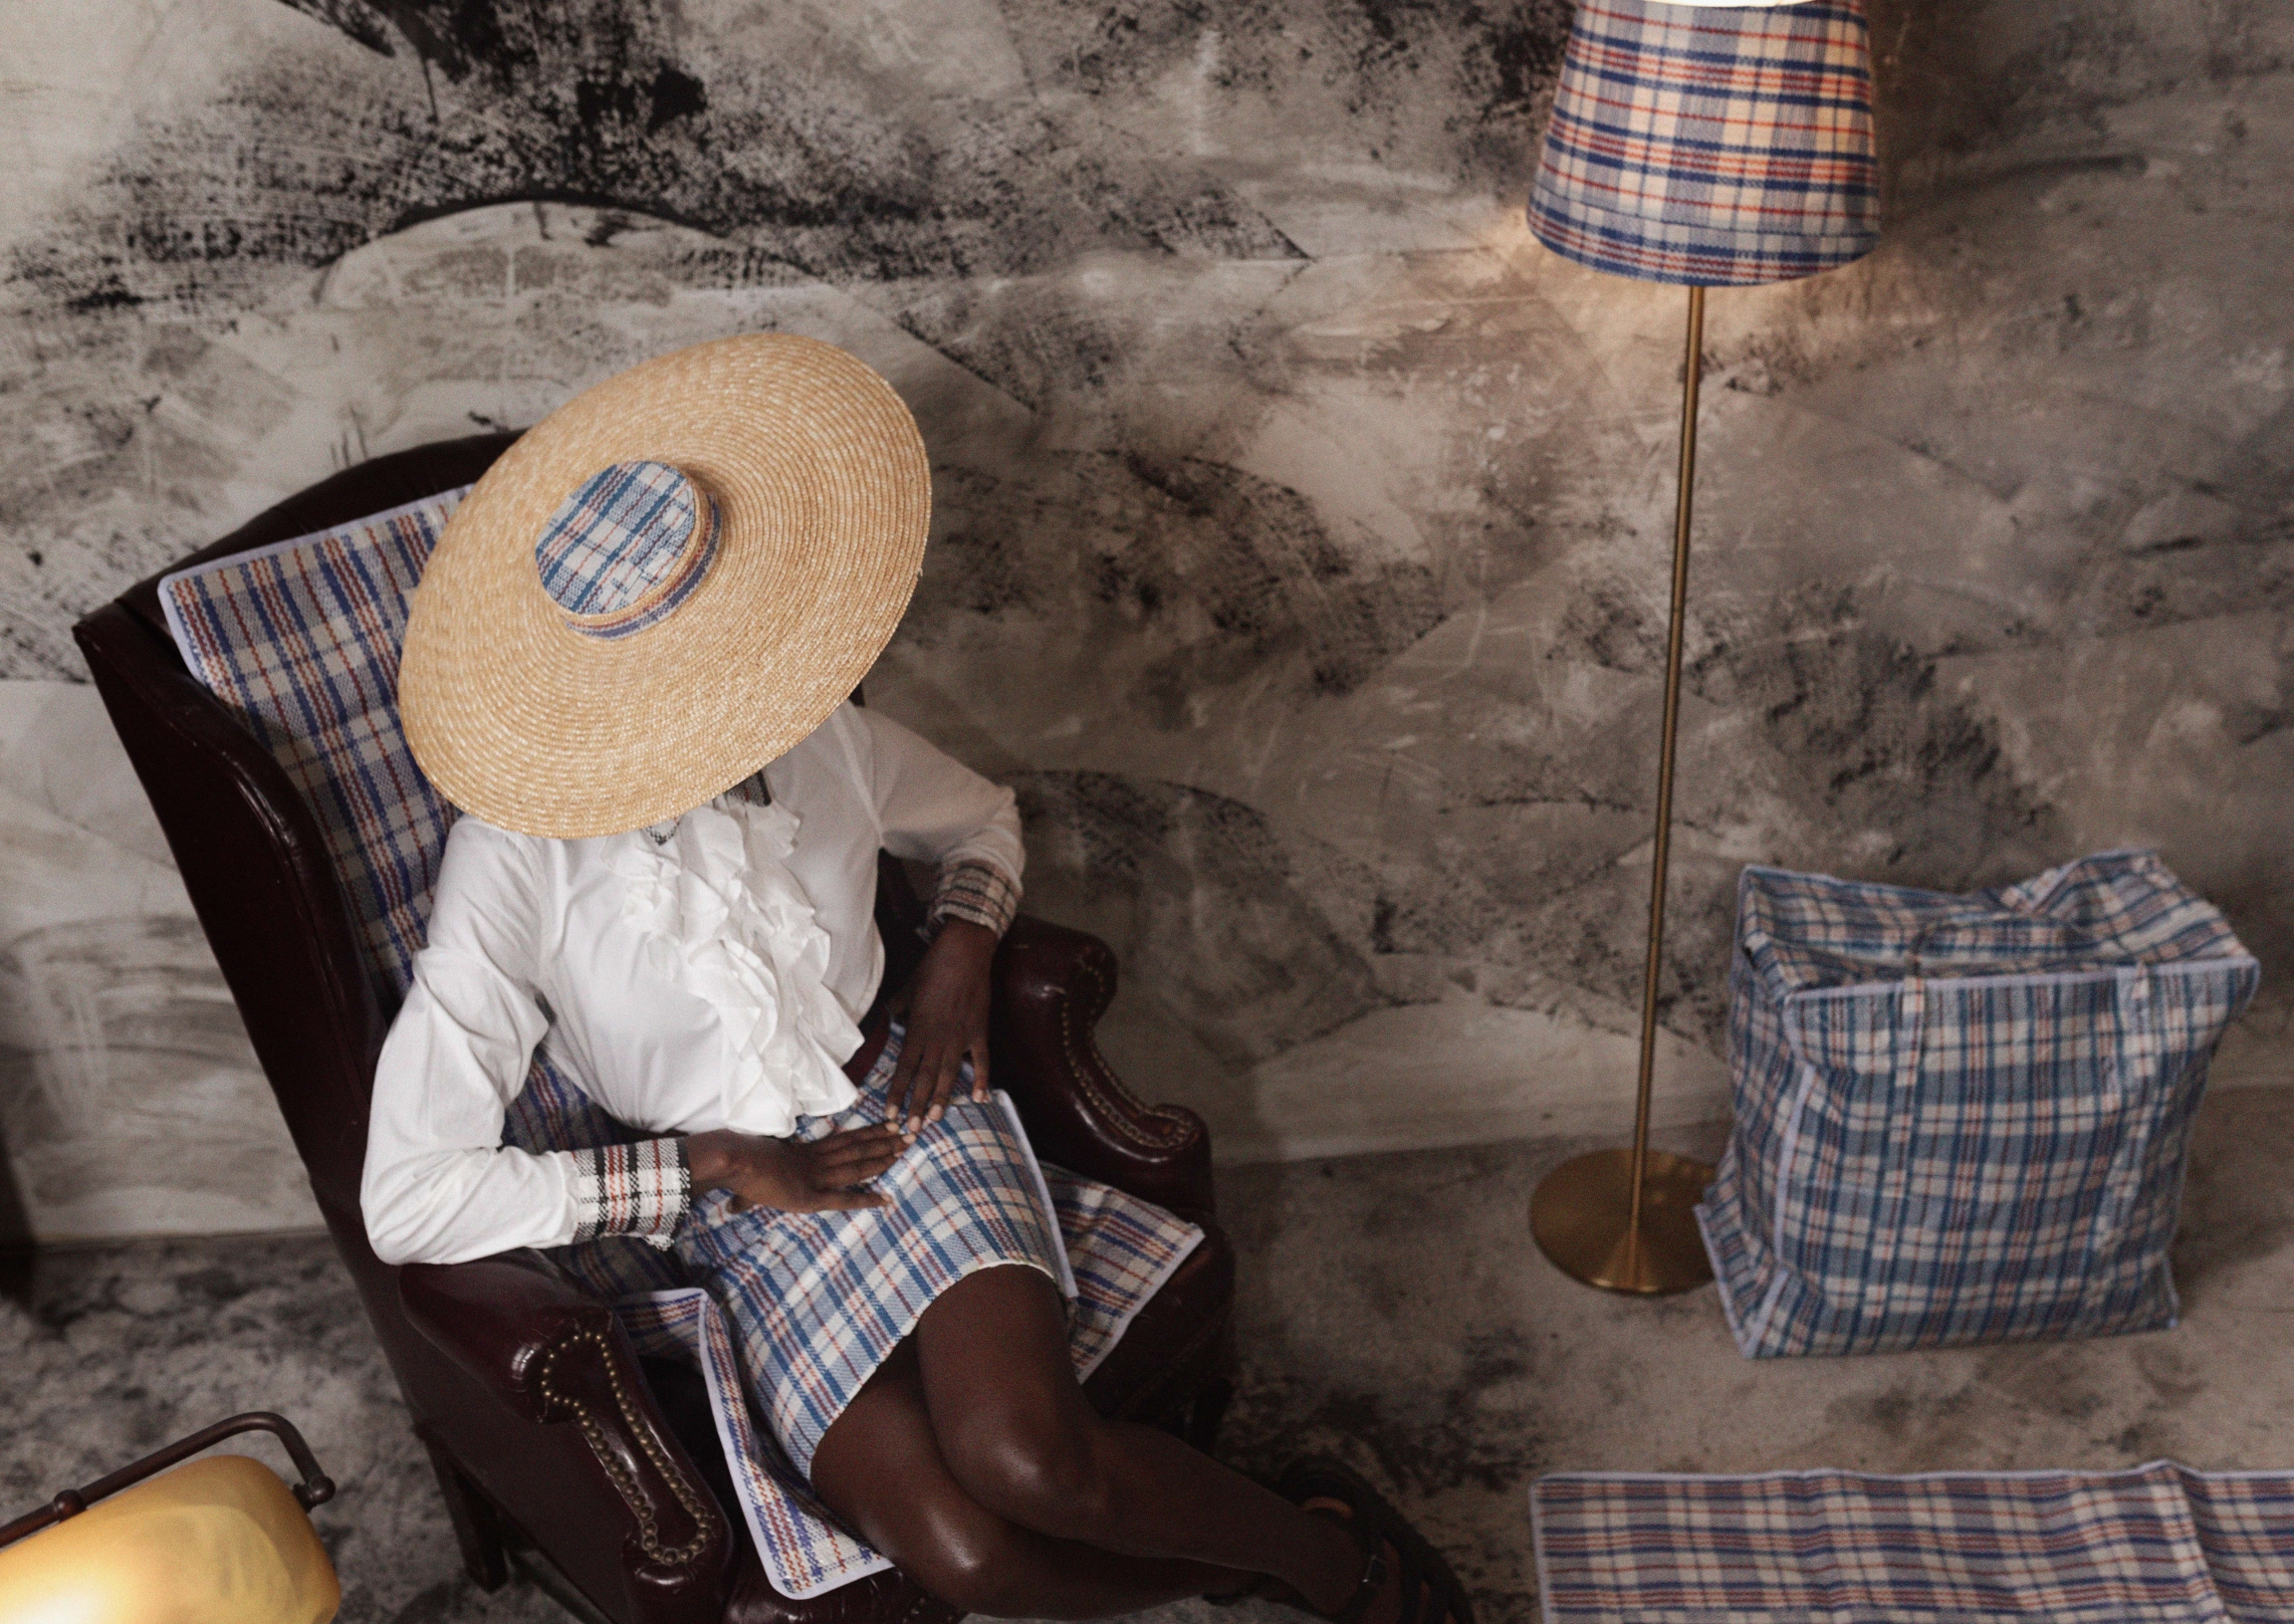 A woman sits wearing a hat, white blouse and plaid plastic skirt with lamp shade of same fabric near plaid travel bag